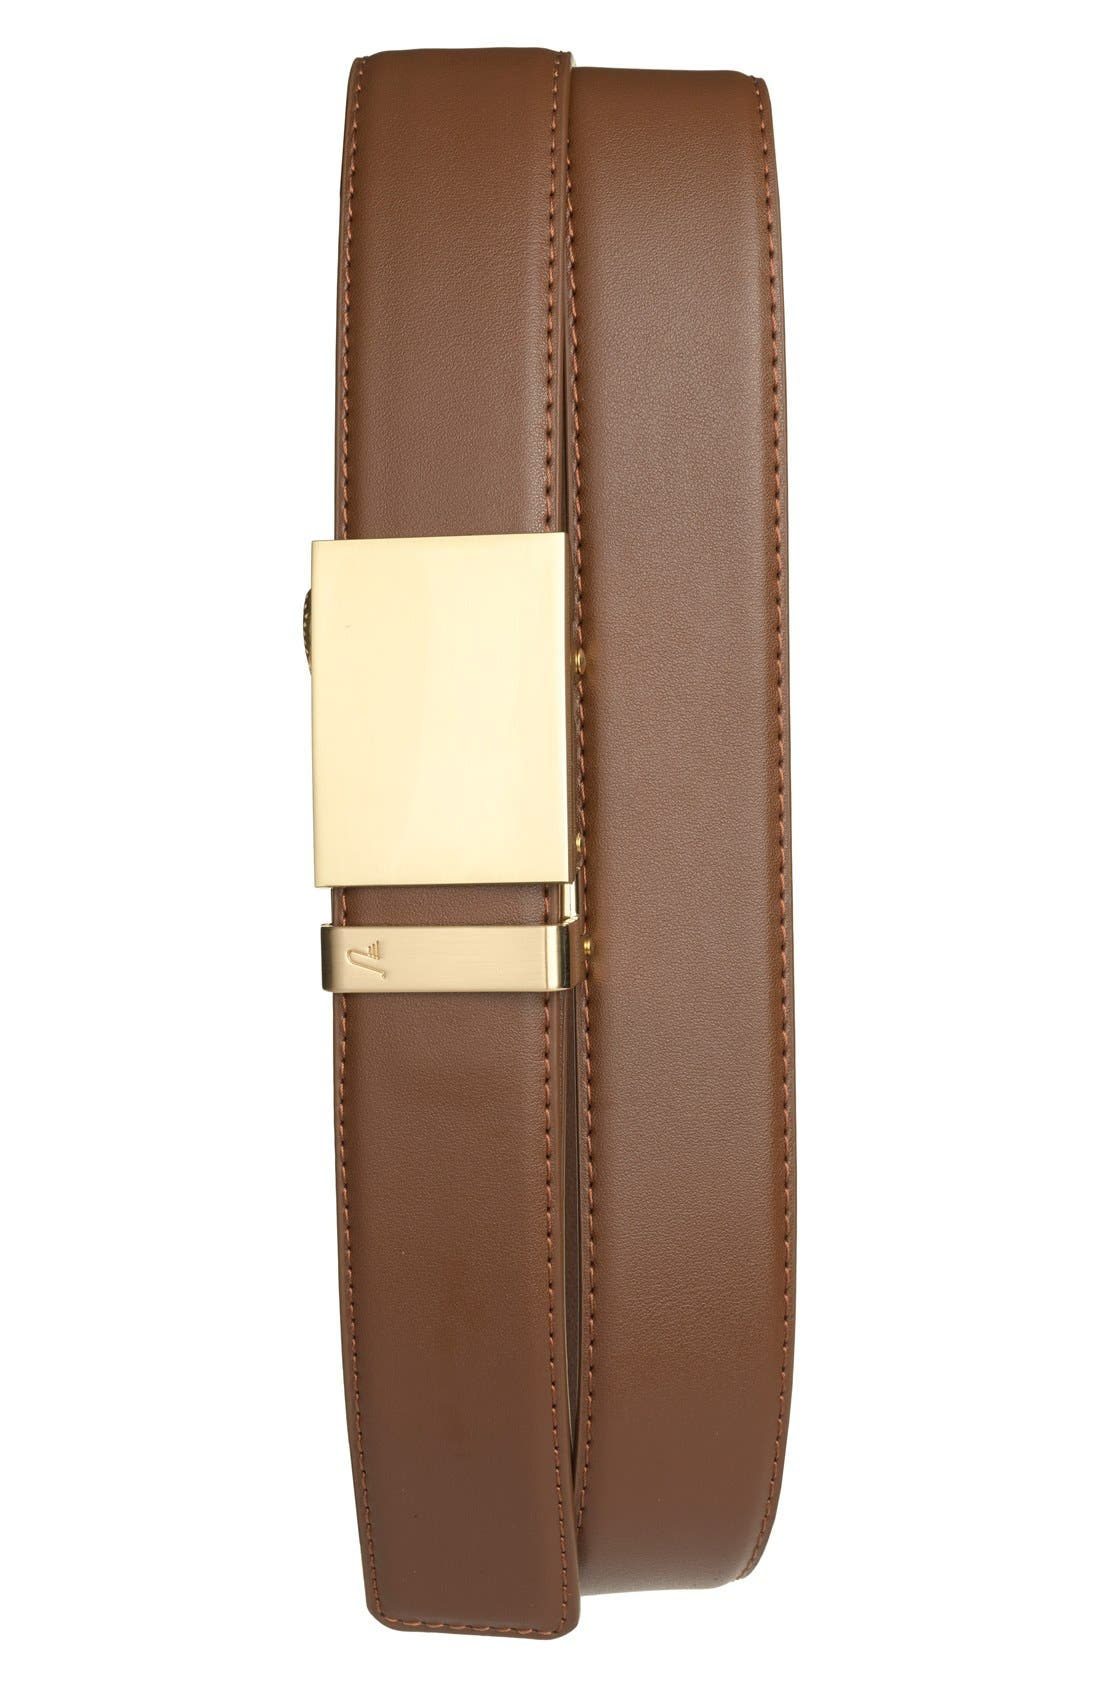 MISSION BELT Gold Leather Belt